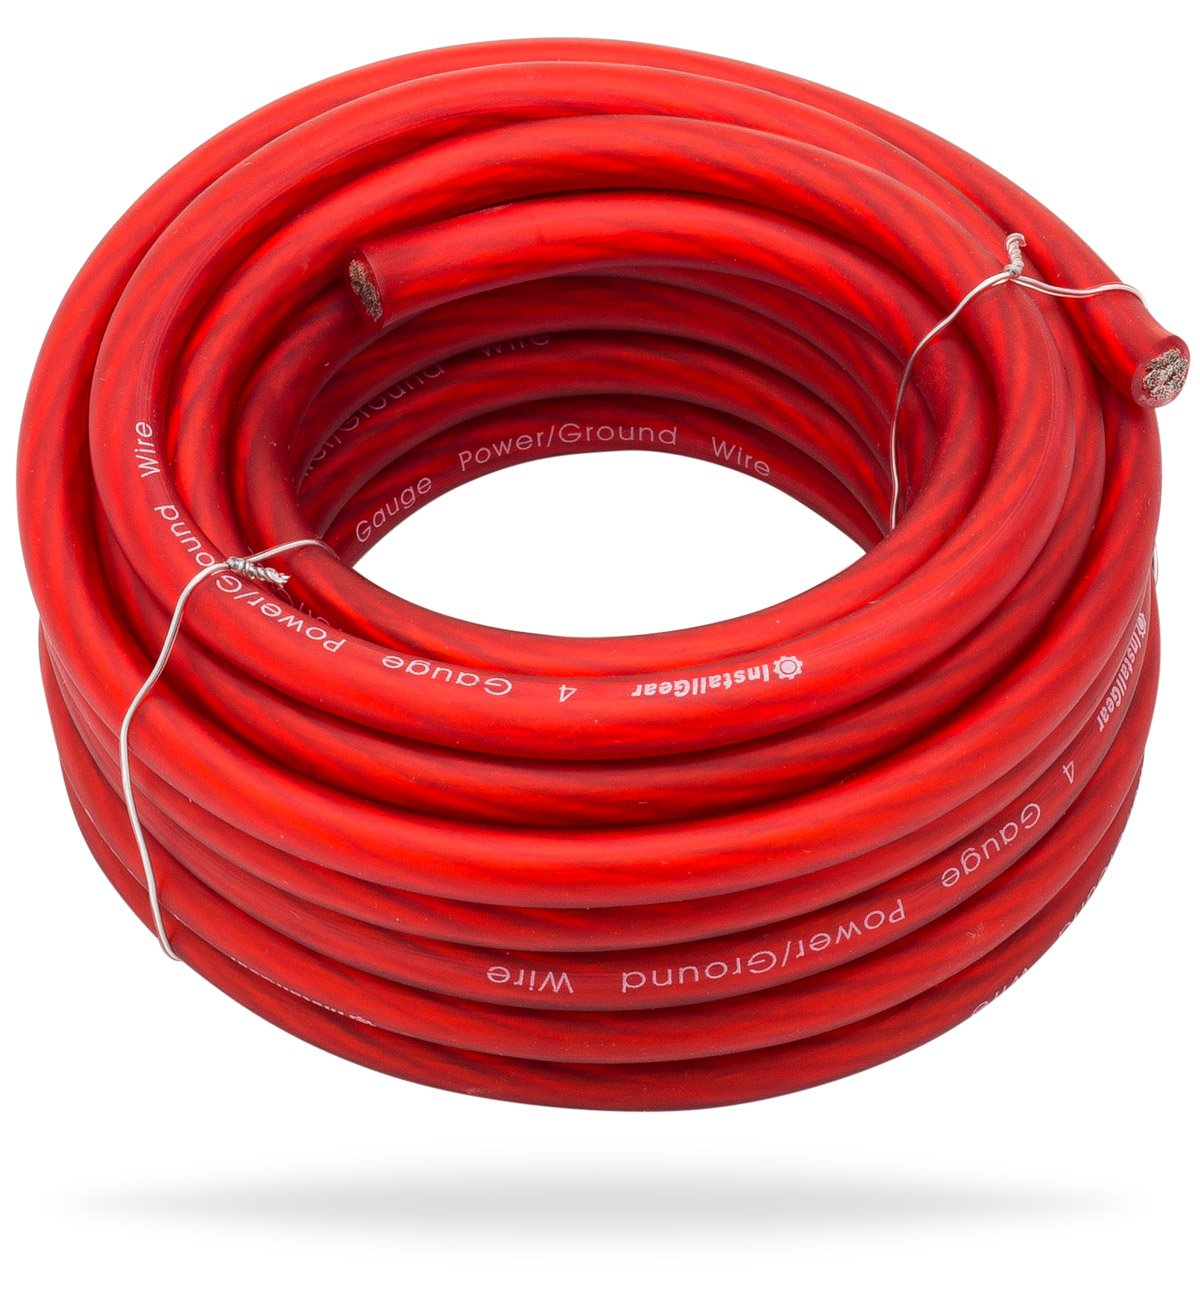 Installgear 4 Gauge Red 25ft Power Ground Wire True Spec House Wiring Without And Soft Touch Cable Car Electronics